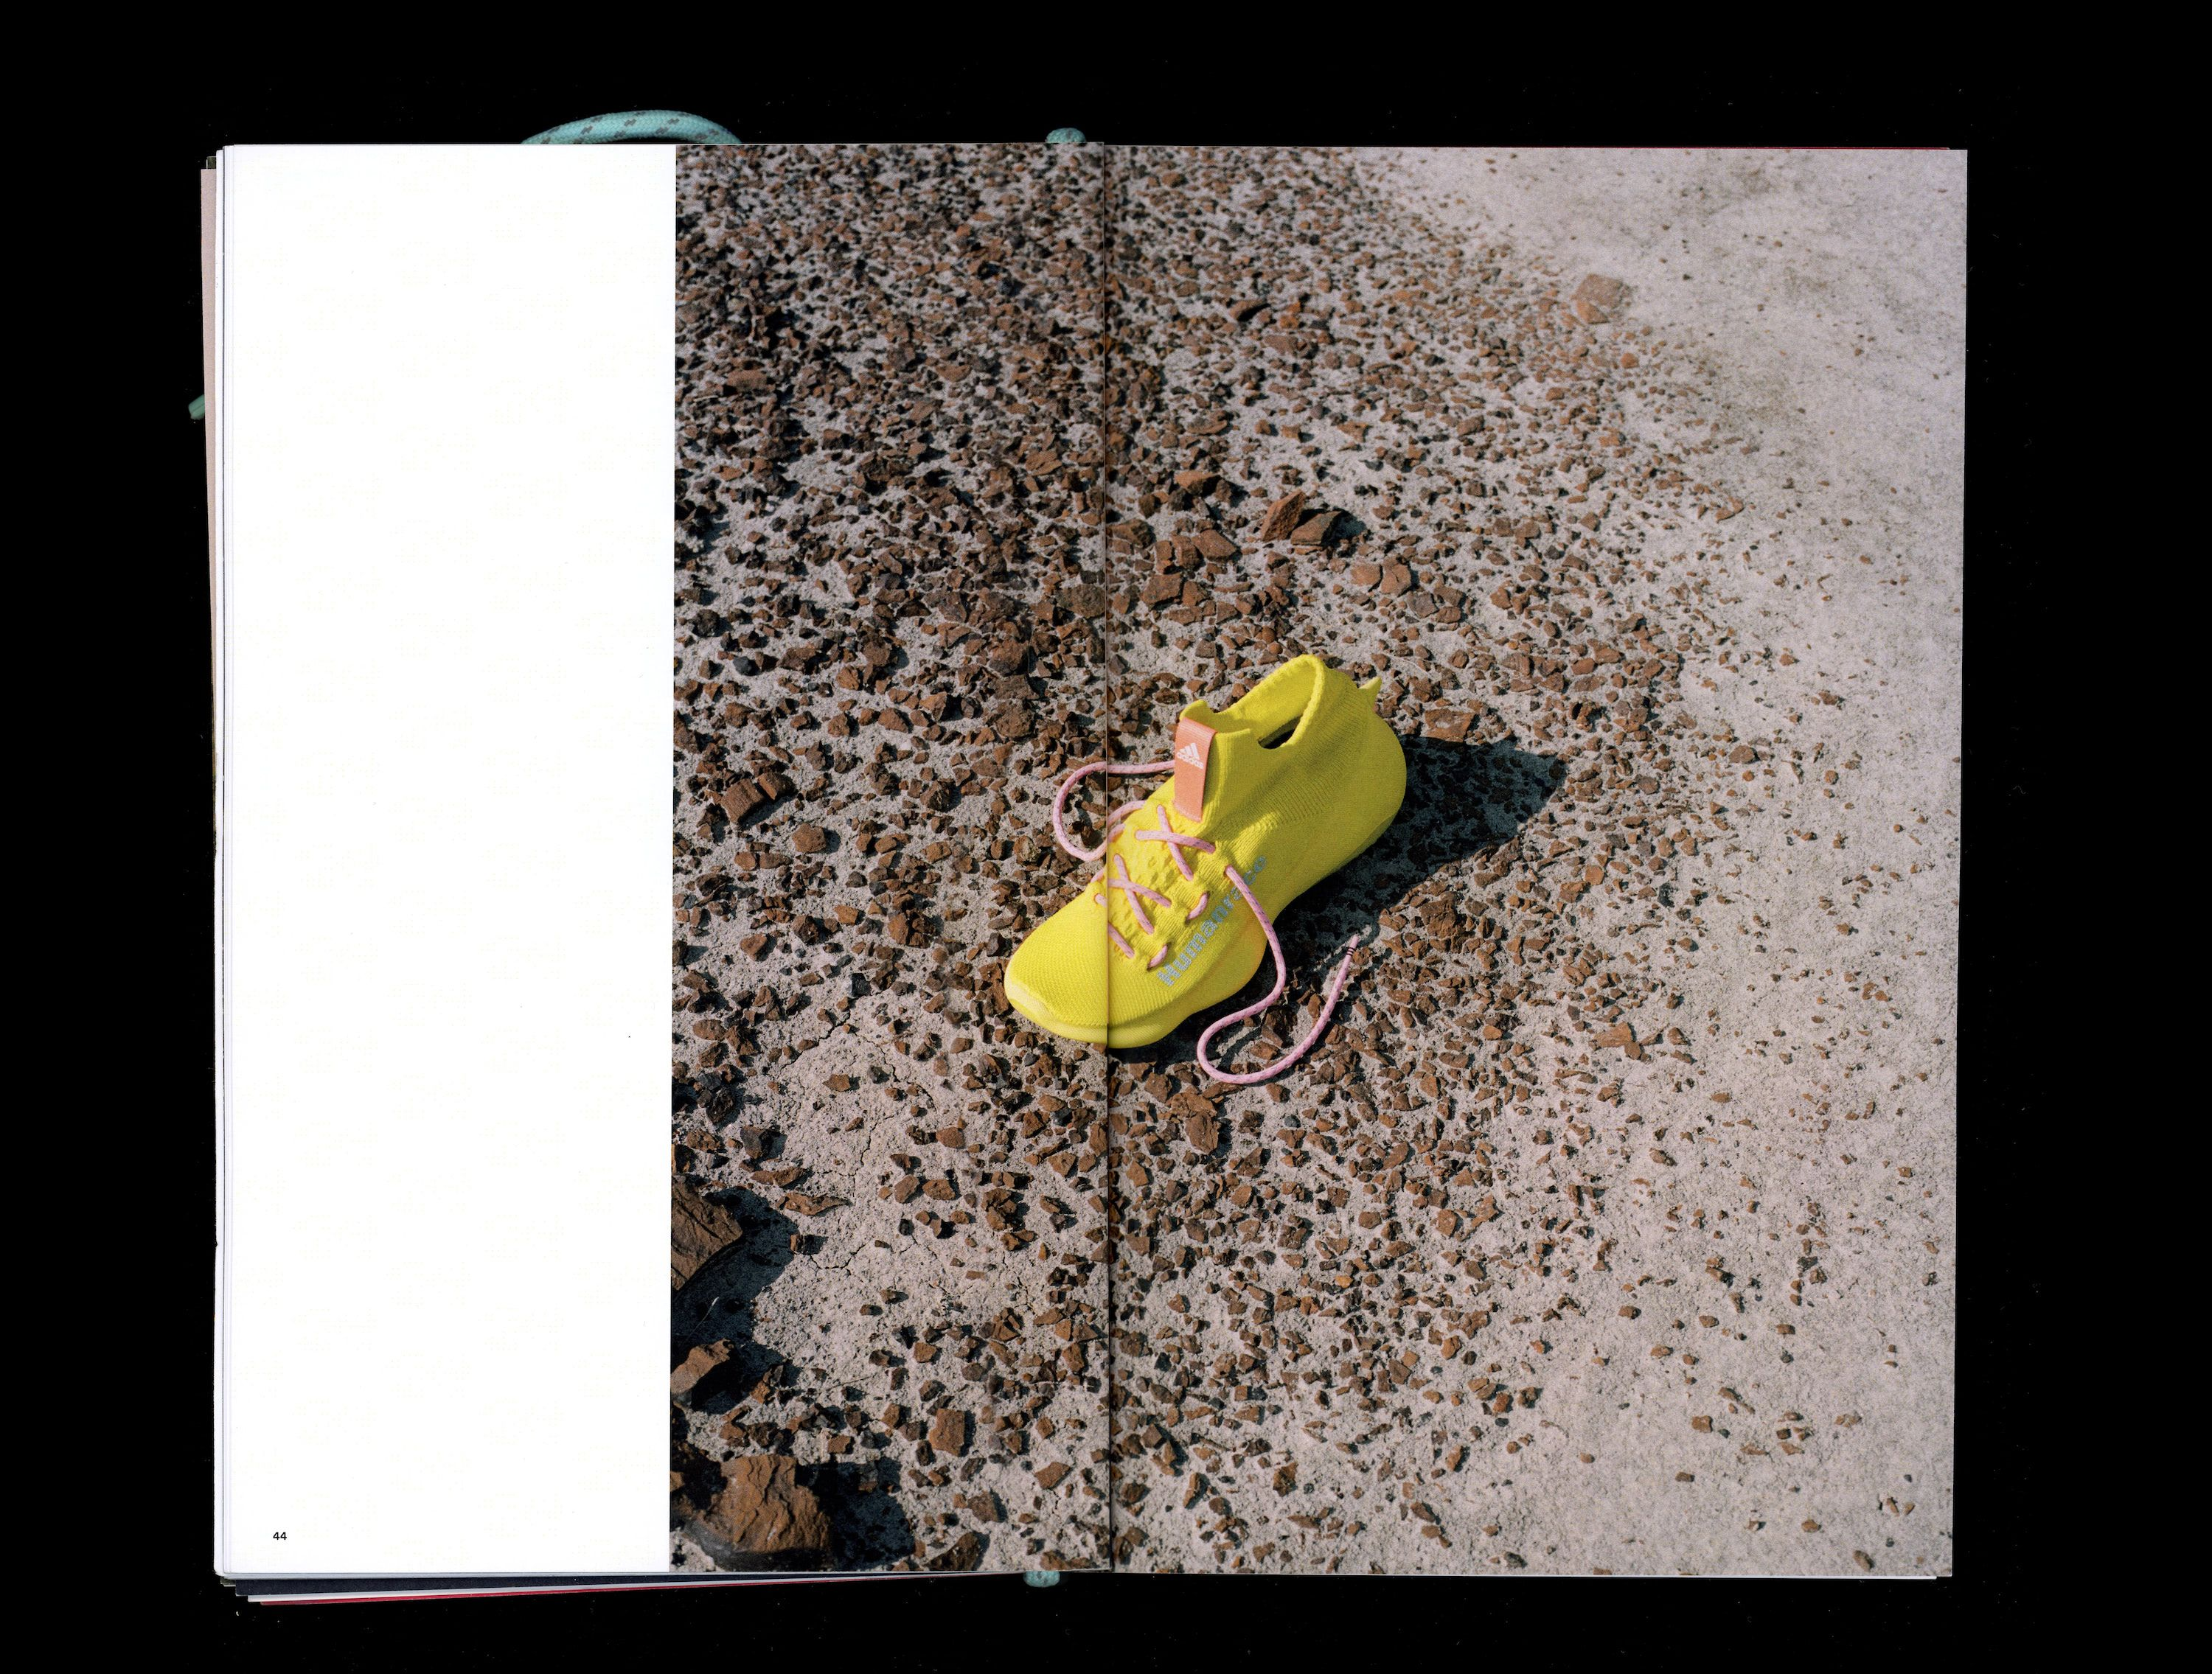 Photograph in book of yellow Sičhona shoe on rocky ground